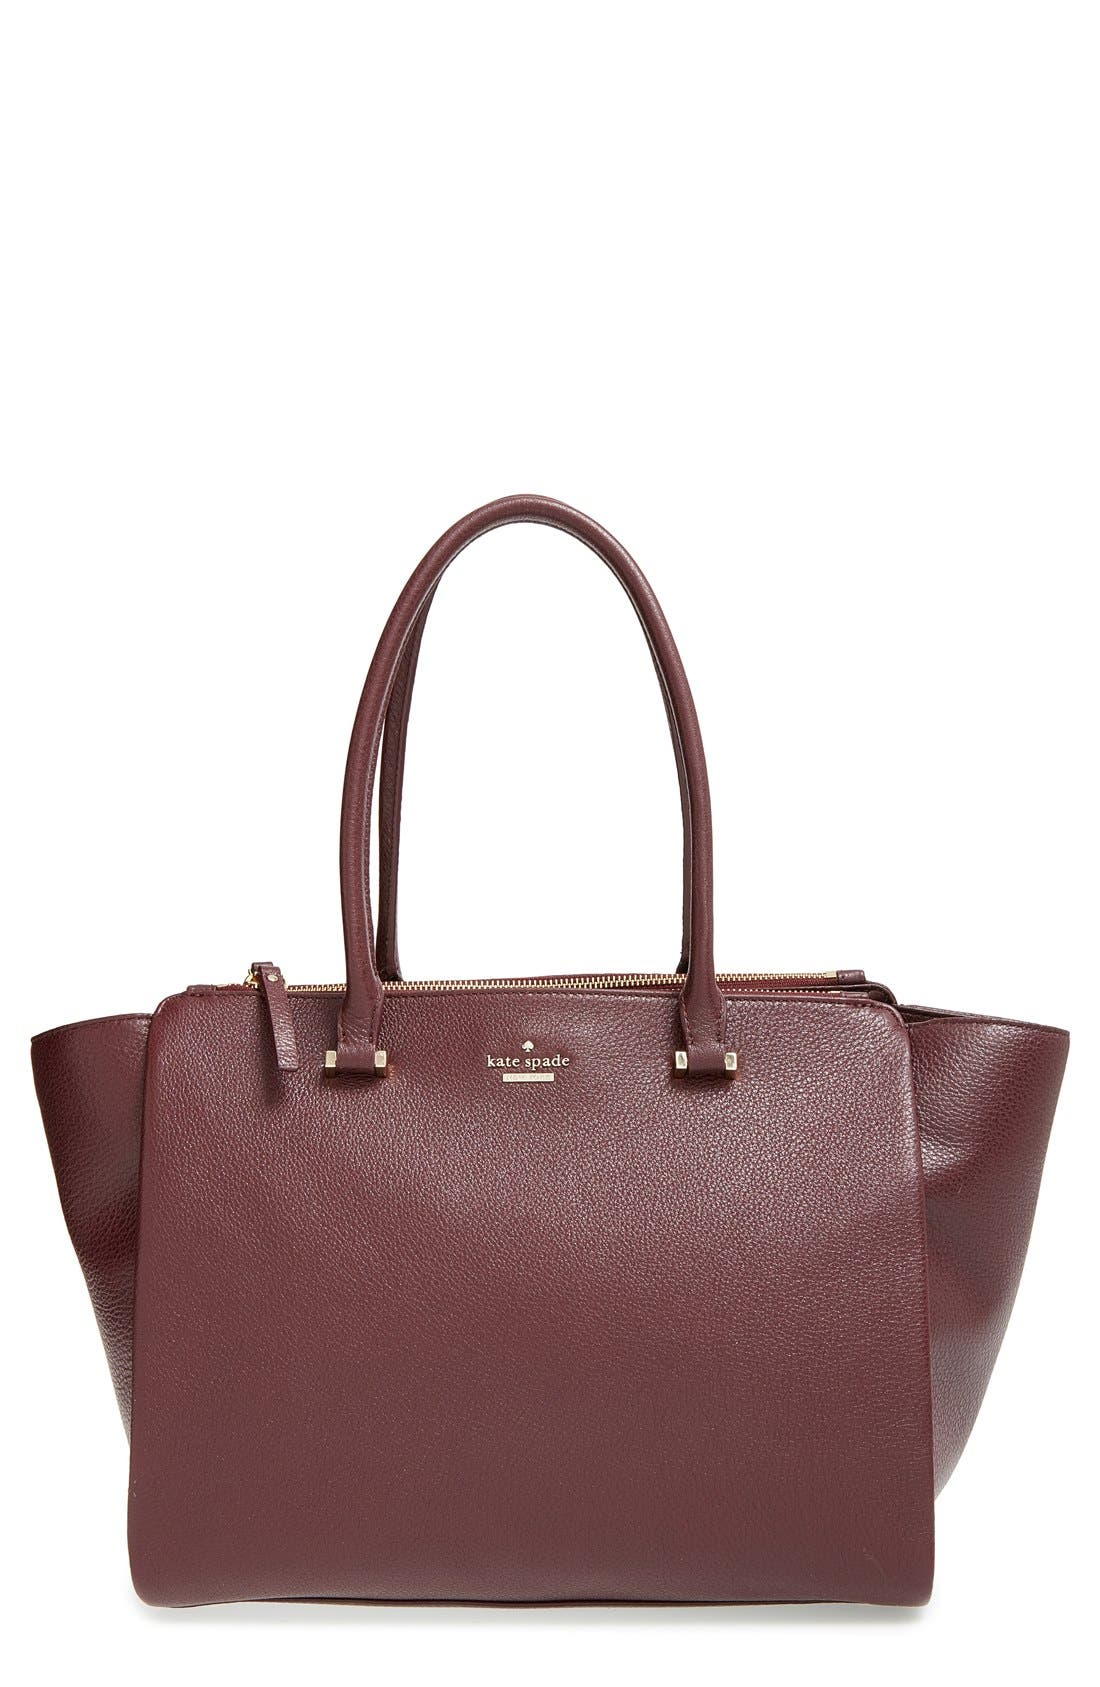 Alternate Image 1 Selected - kate spade new york 'emerson place - smooth holland' leather tote